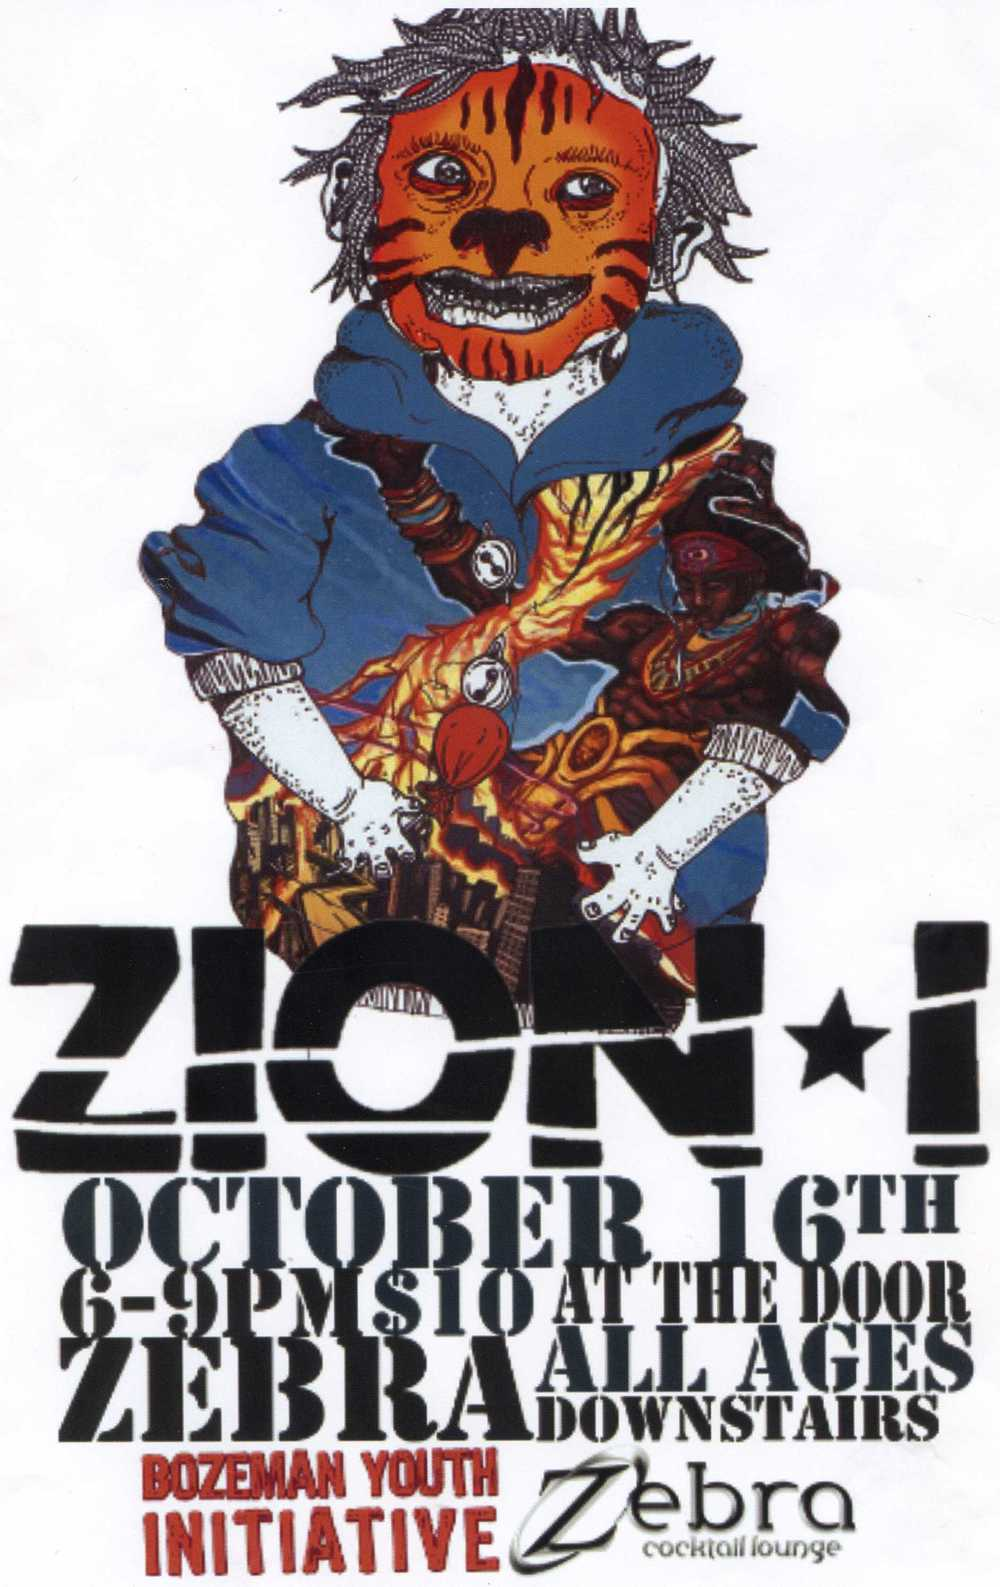 Kate's poster for the Zion I show.